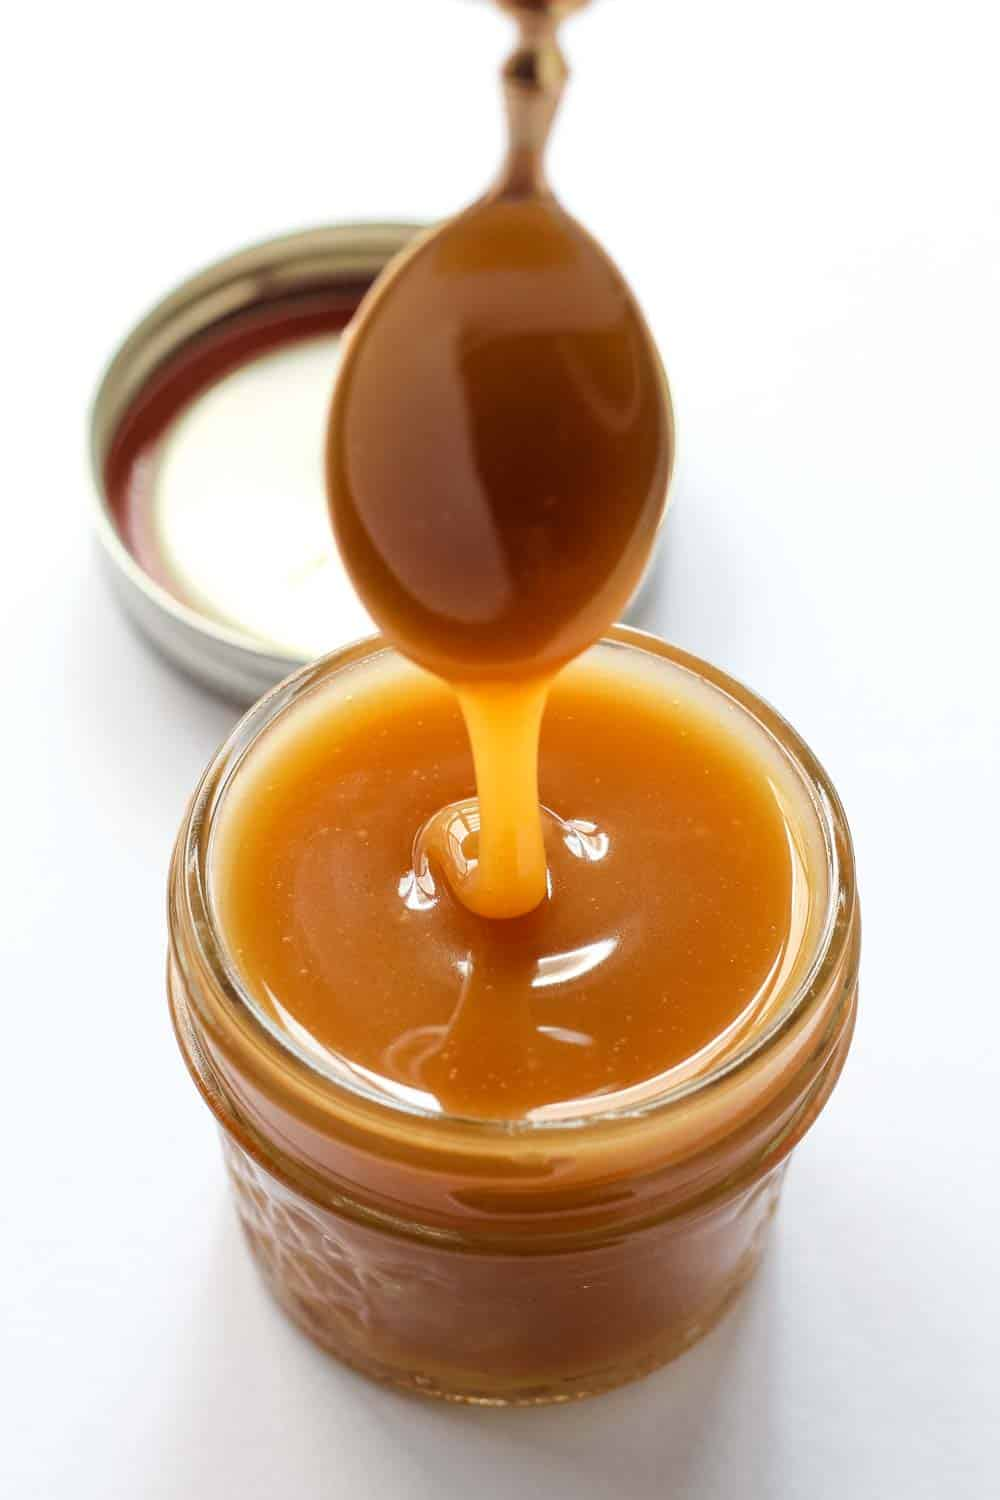 Learn how to make delicious Vegan Caramel Sauce with coconut milk. This awesome recipe is not only dairy free but also uses no refined sugar so it is clean eating and paleo friendly.